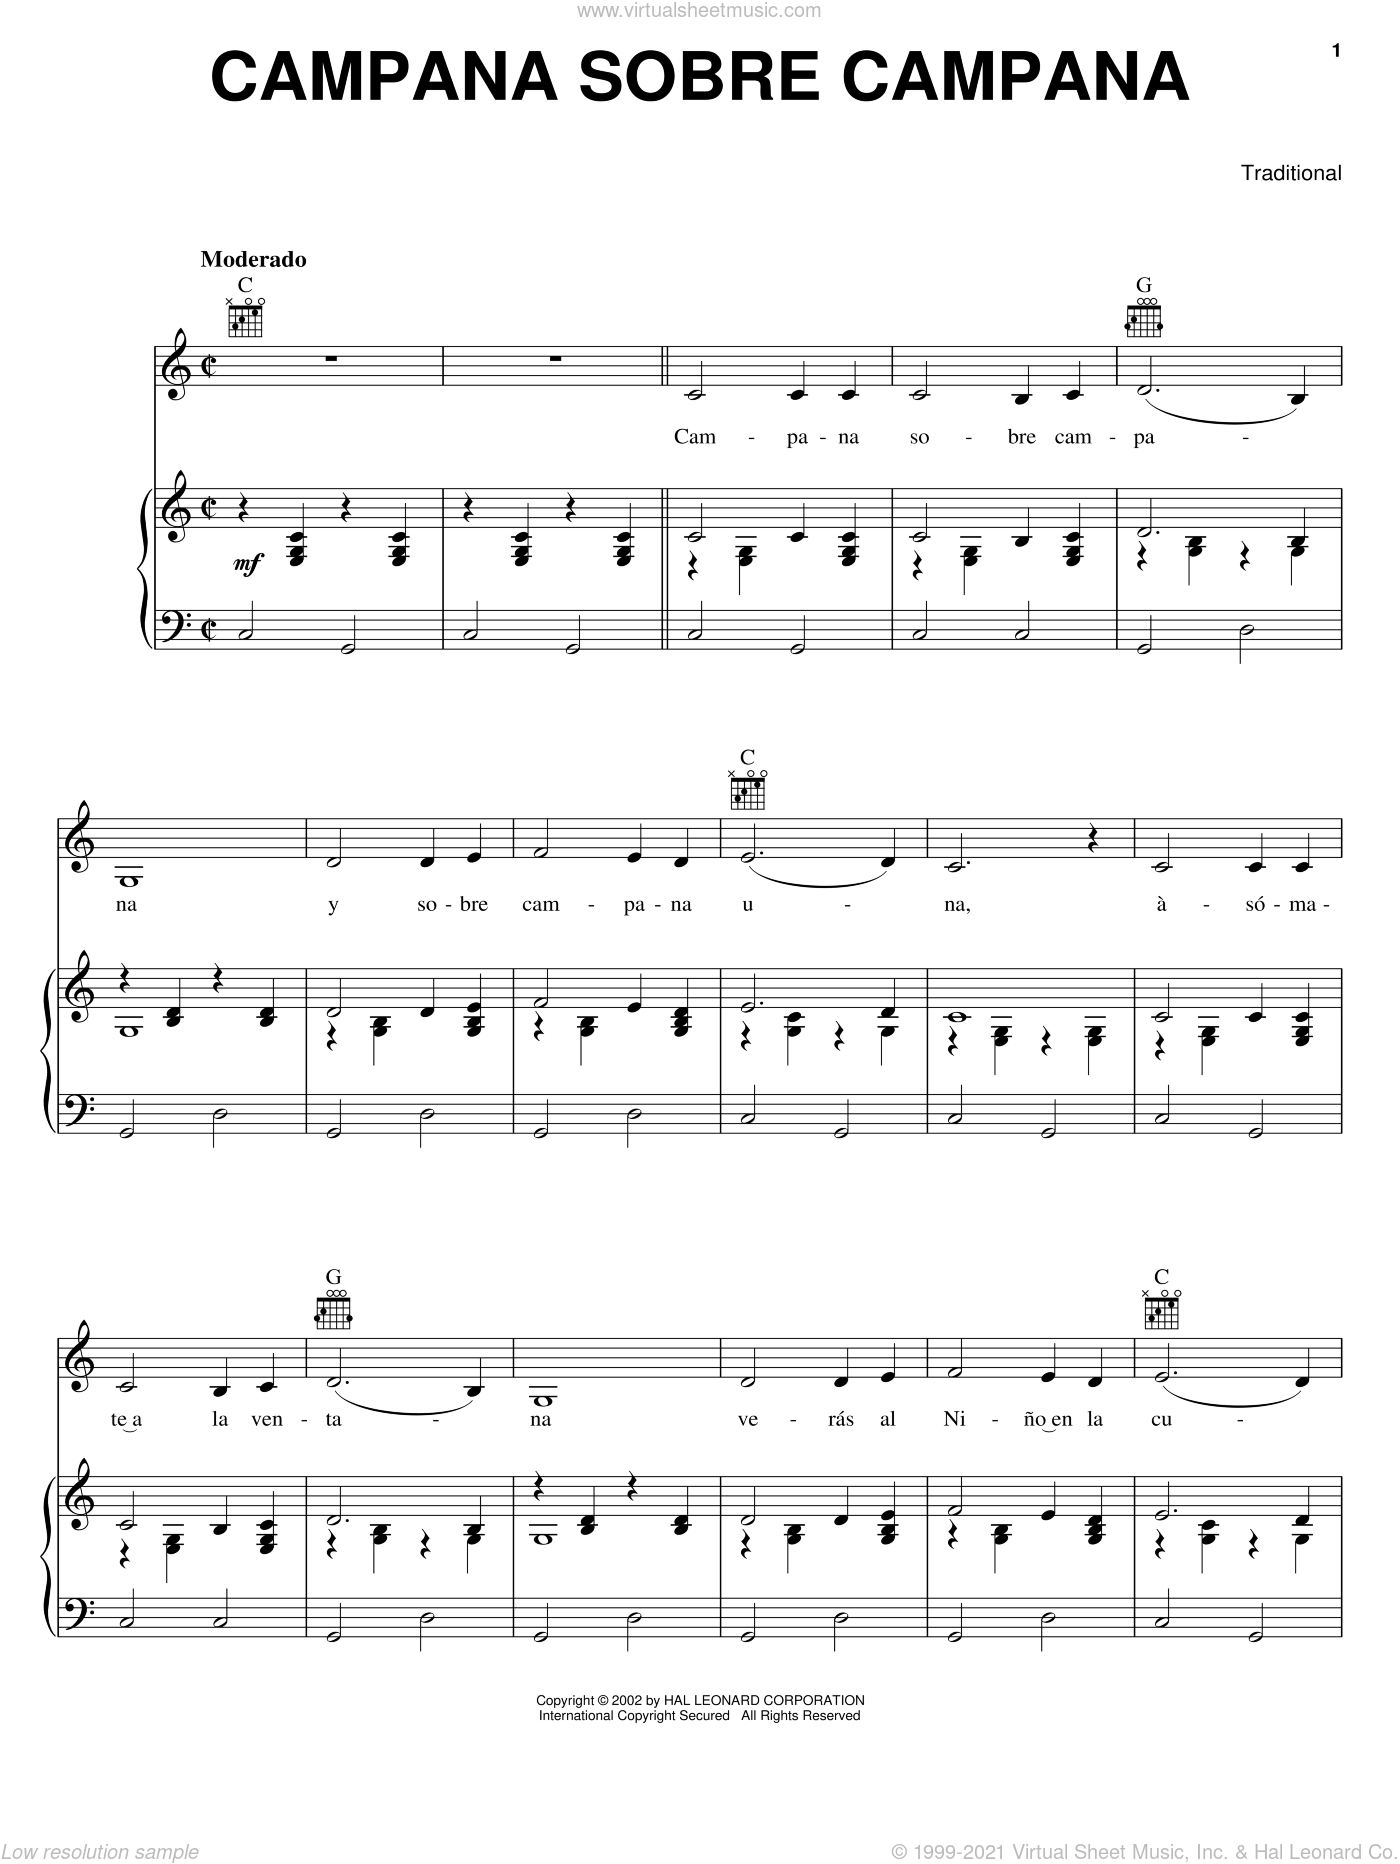 Campana Sobre Campana sheet music for voice, piano or guitar, intermediate skill level